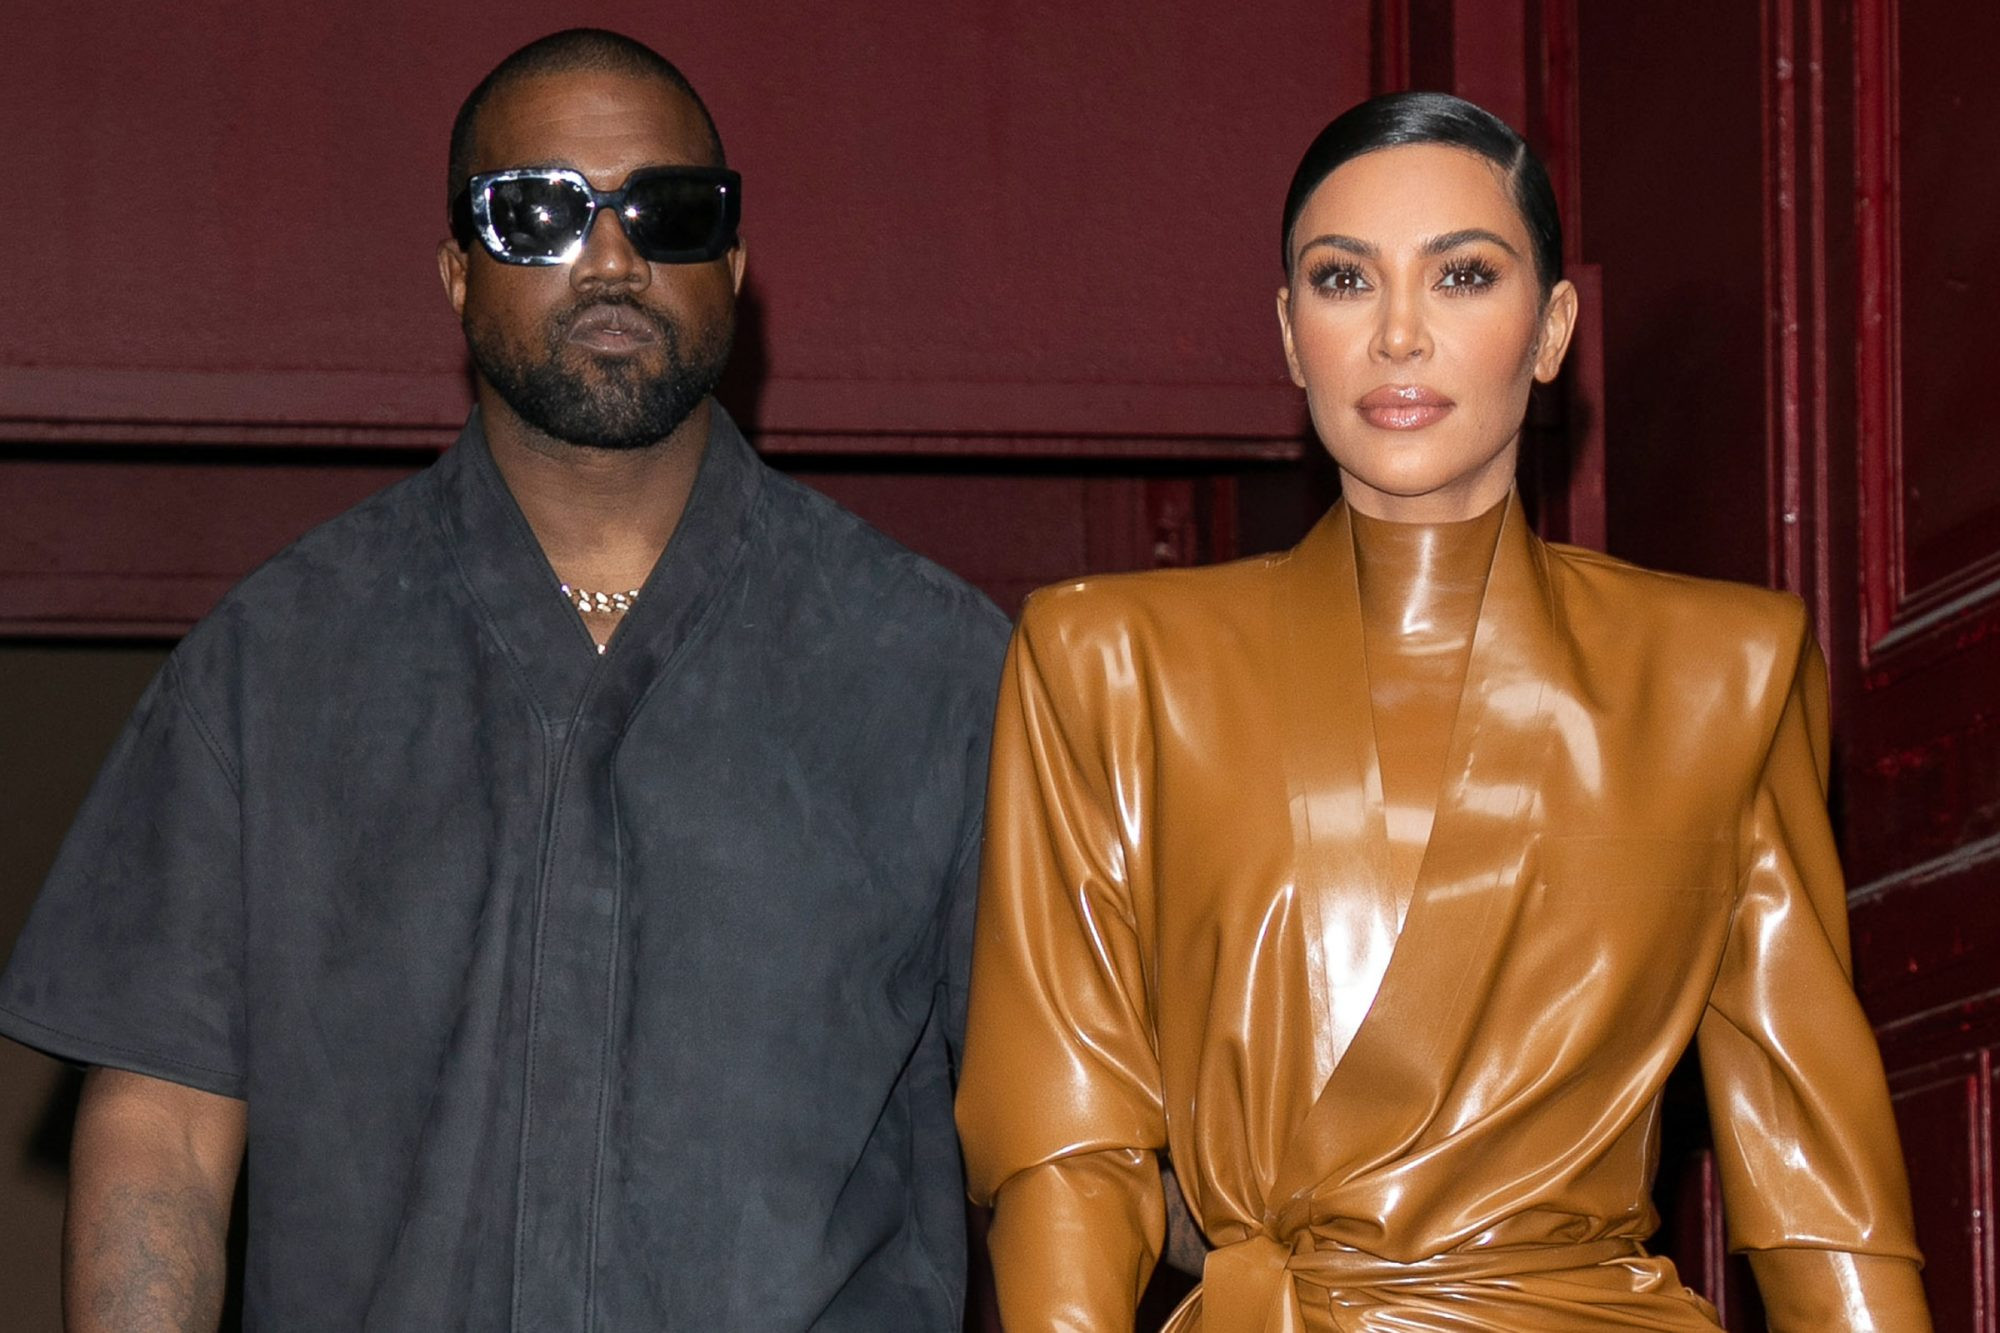 'She's not in contact with him': Kim Kardashian West is 'planning a Valentine's Day celebration without Kanye West' amid 'divorce'